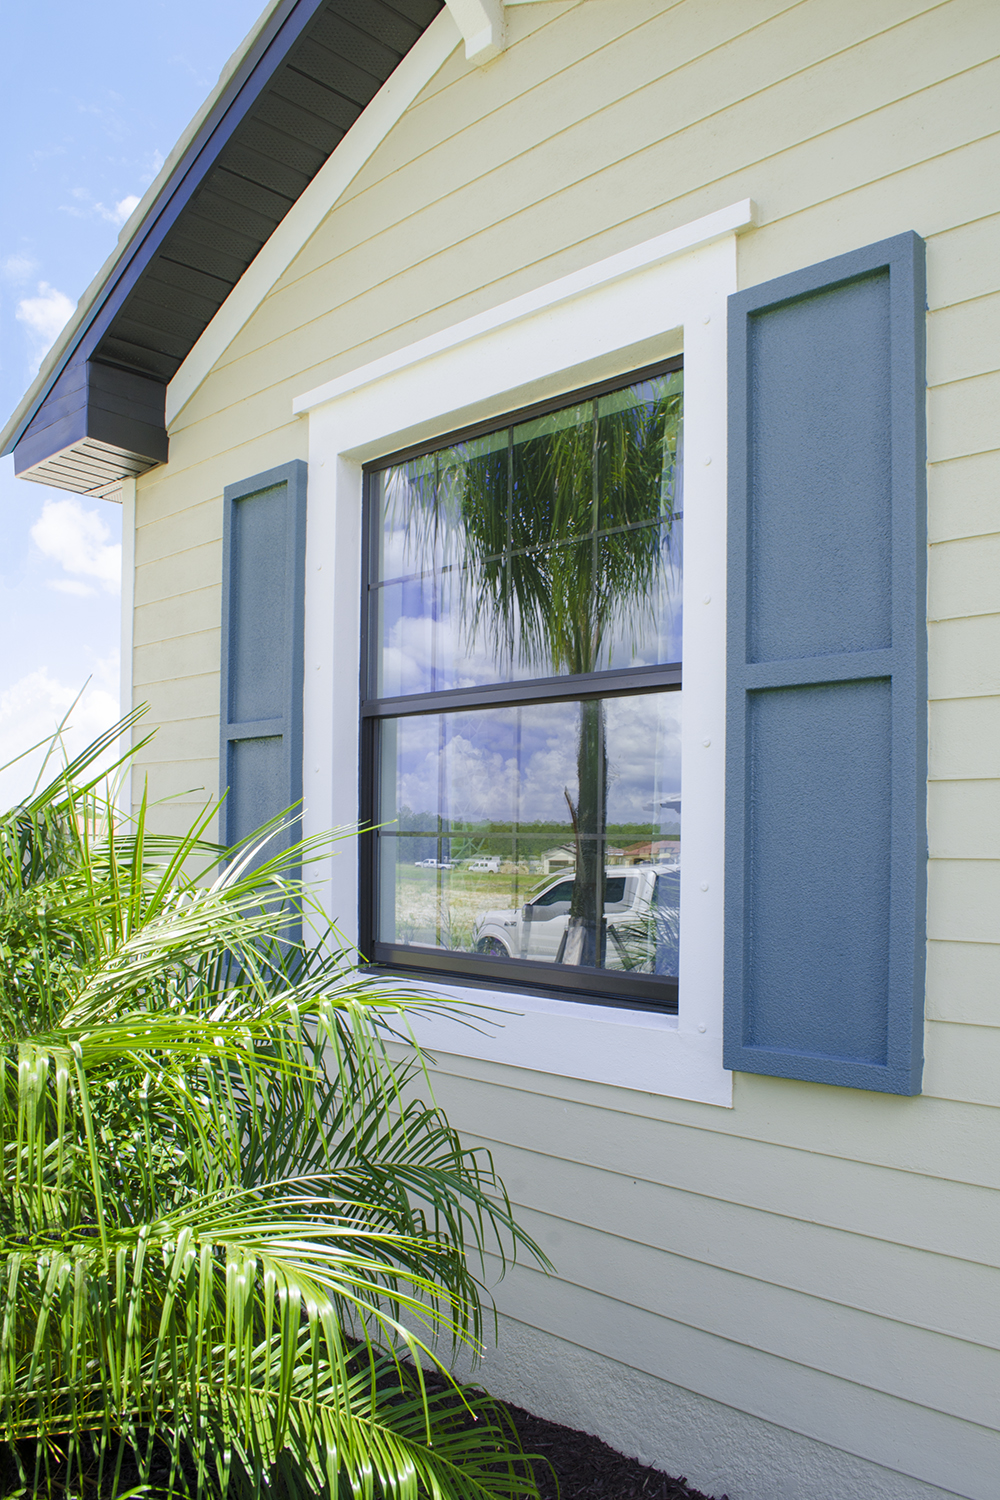 Mi 185 Single Hung Window On Home Exterior